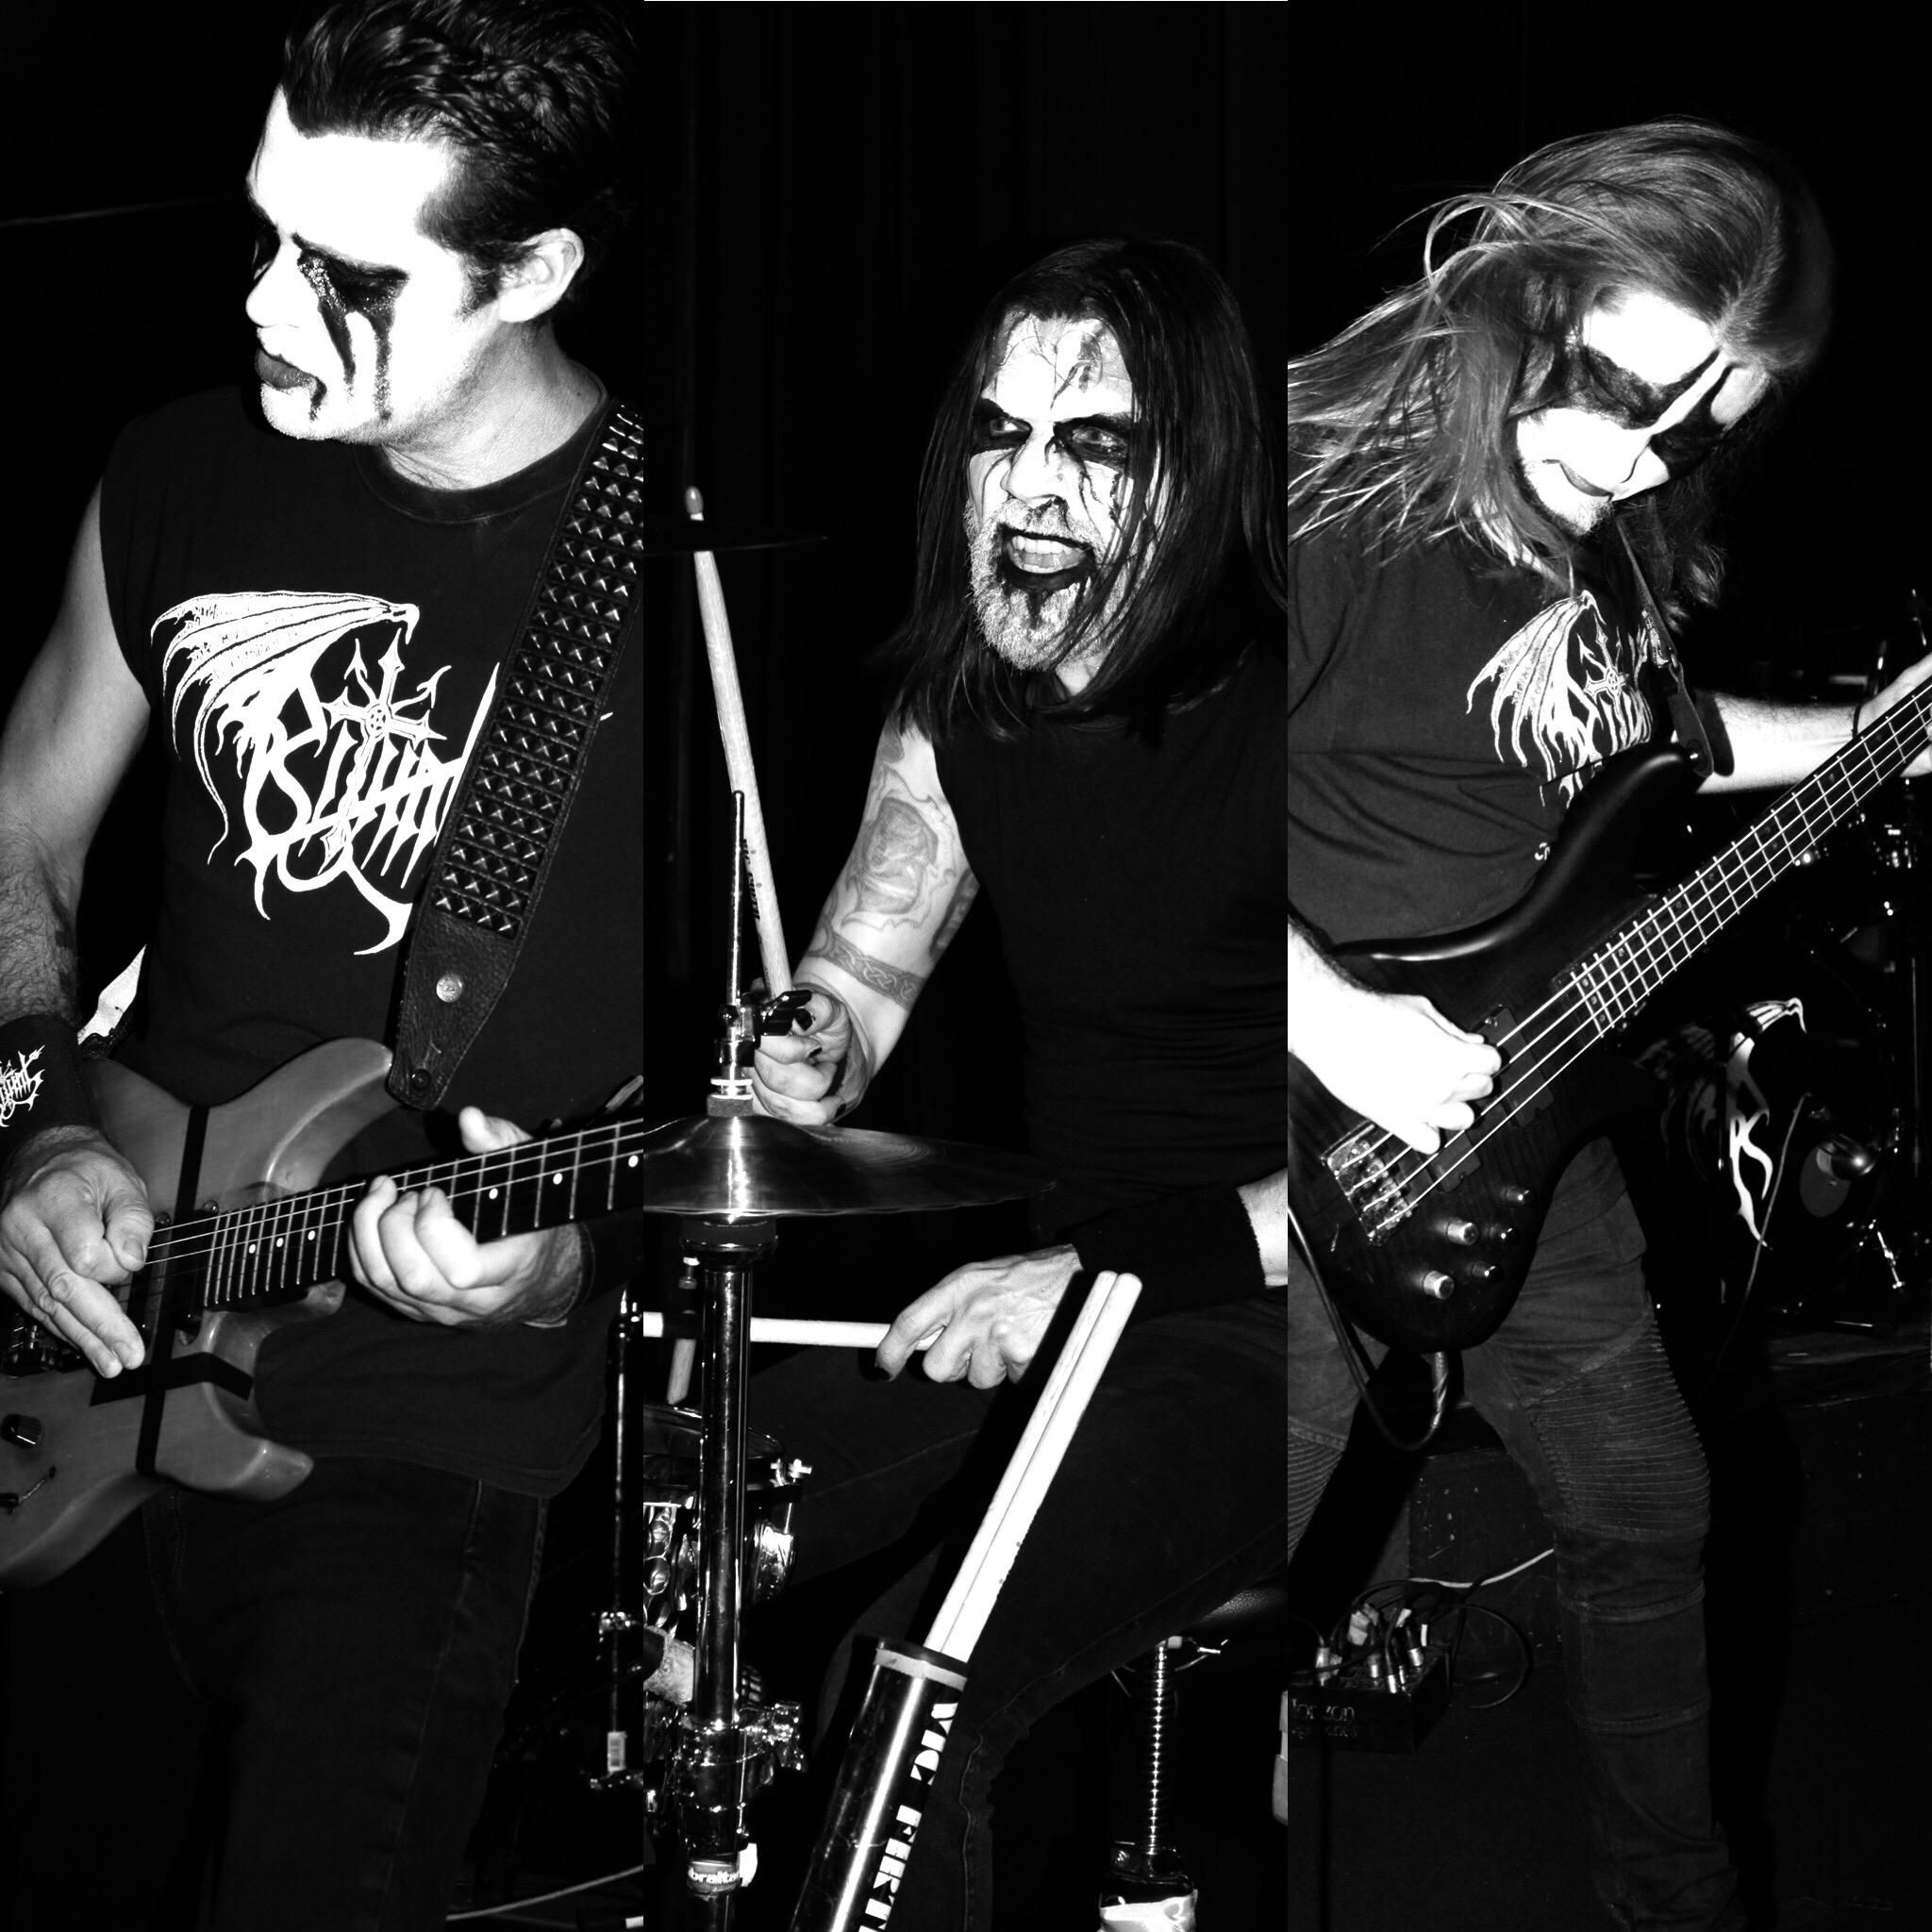 Black Metal invades Lakewood! Ritual headlines The Regal Inn Saturday, June 2 w/SWARTWOUD, EXHAUST, and more! LM's Bon Voyage gig before heading to Europe w/Distorted Pony. Come out & raise hell with us! 6763 Carson St. Lakewood, CA 90713 21+ / 8 pm / $7 photos by Dan Rawe